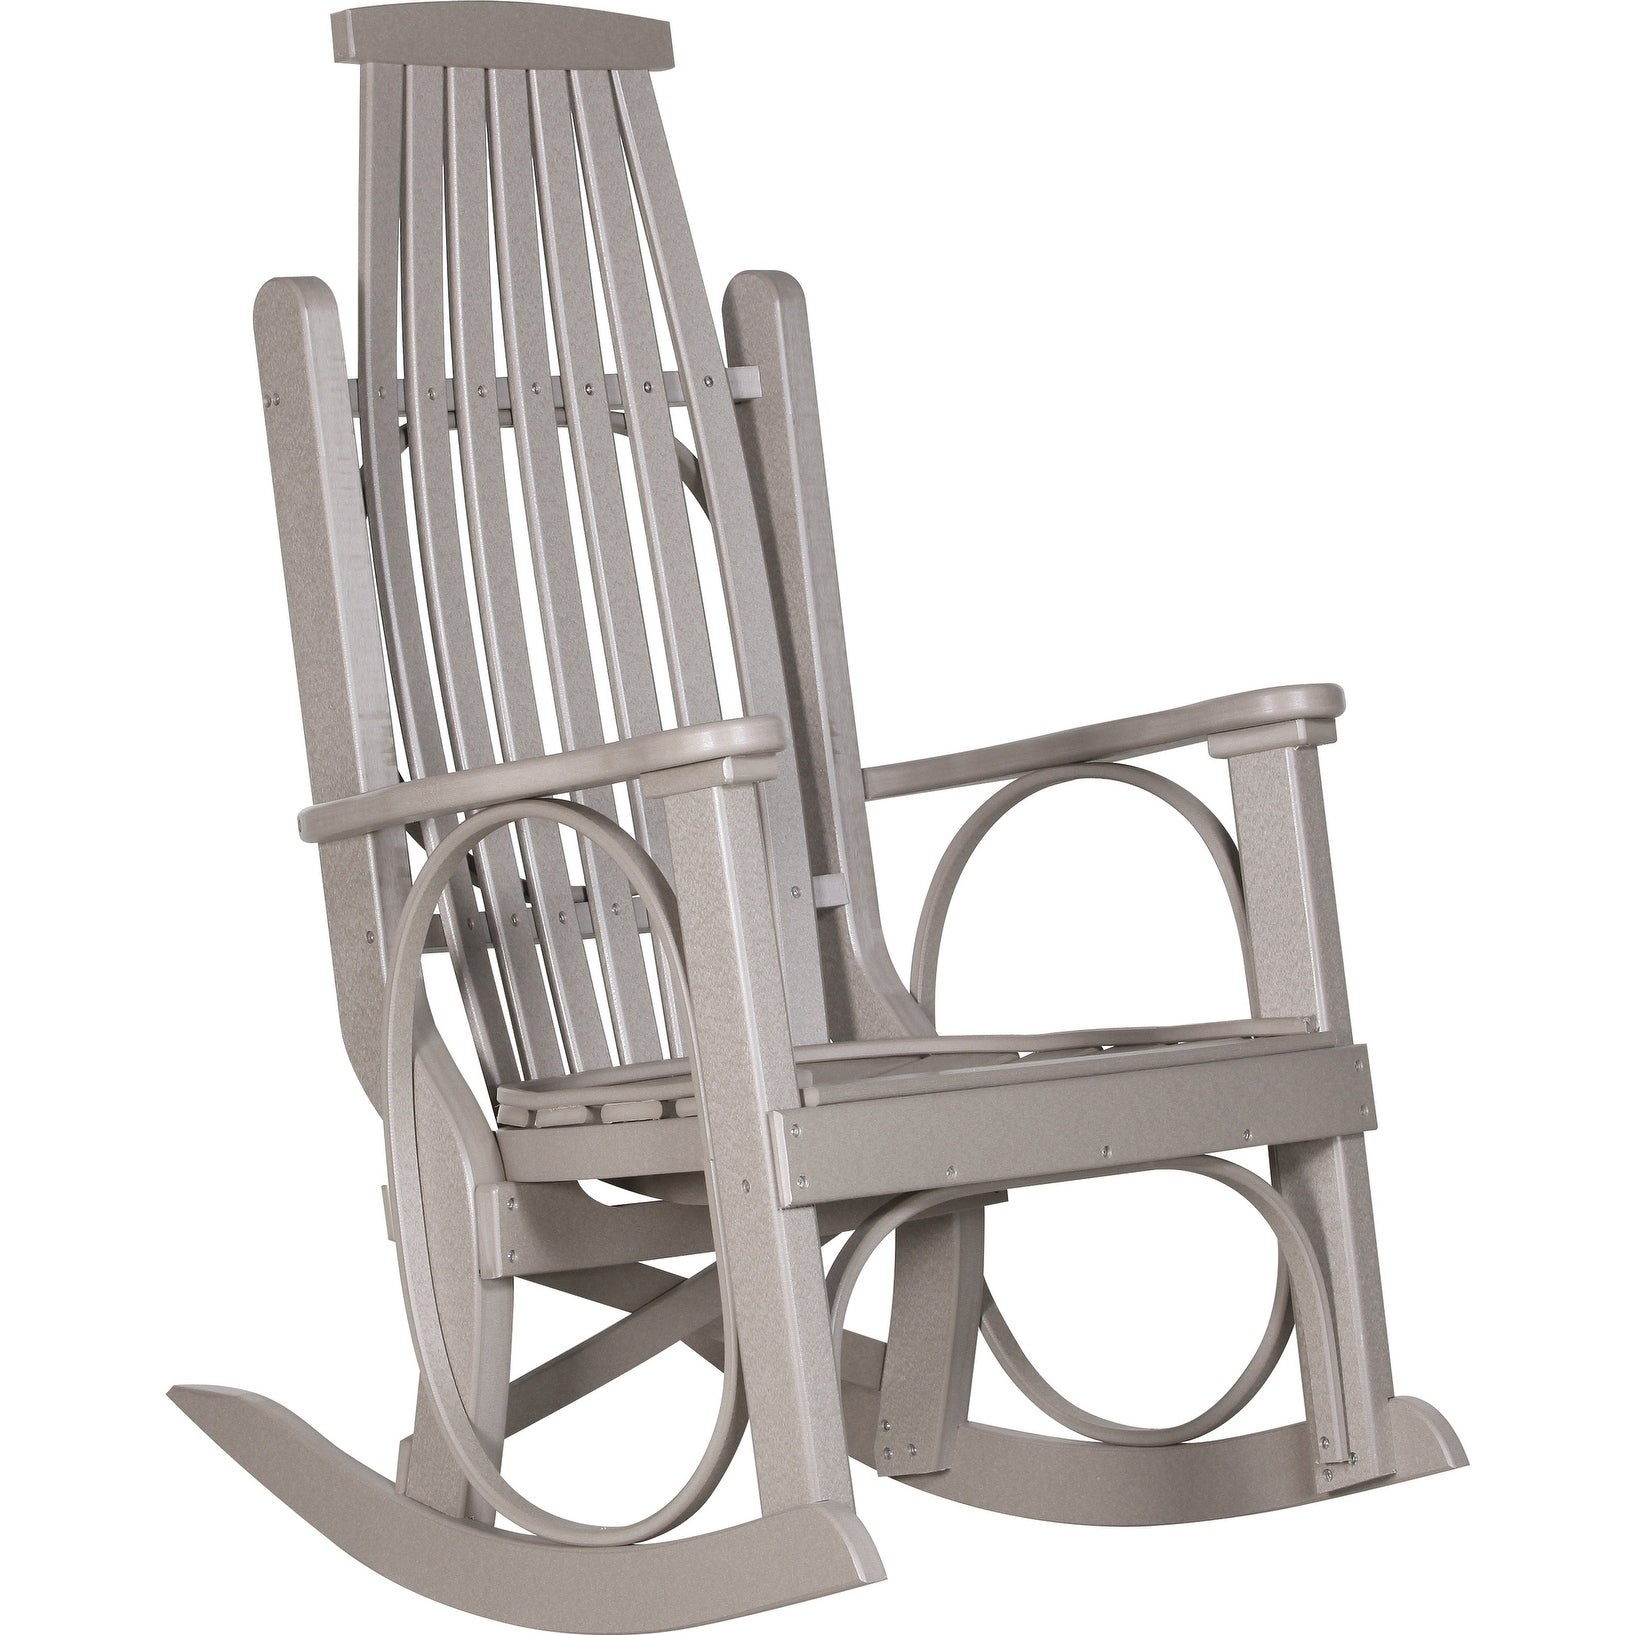 grandpa's outdoor rocking chair - recycled plastic